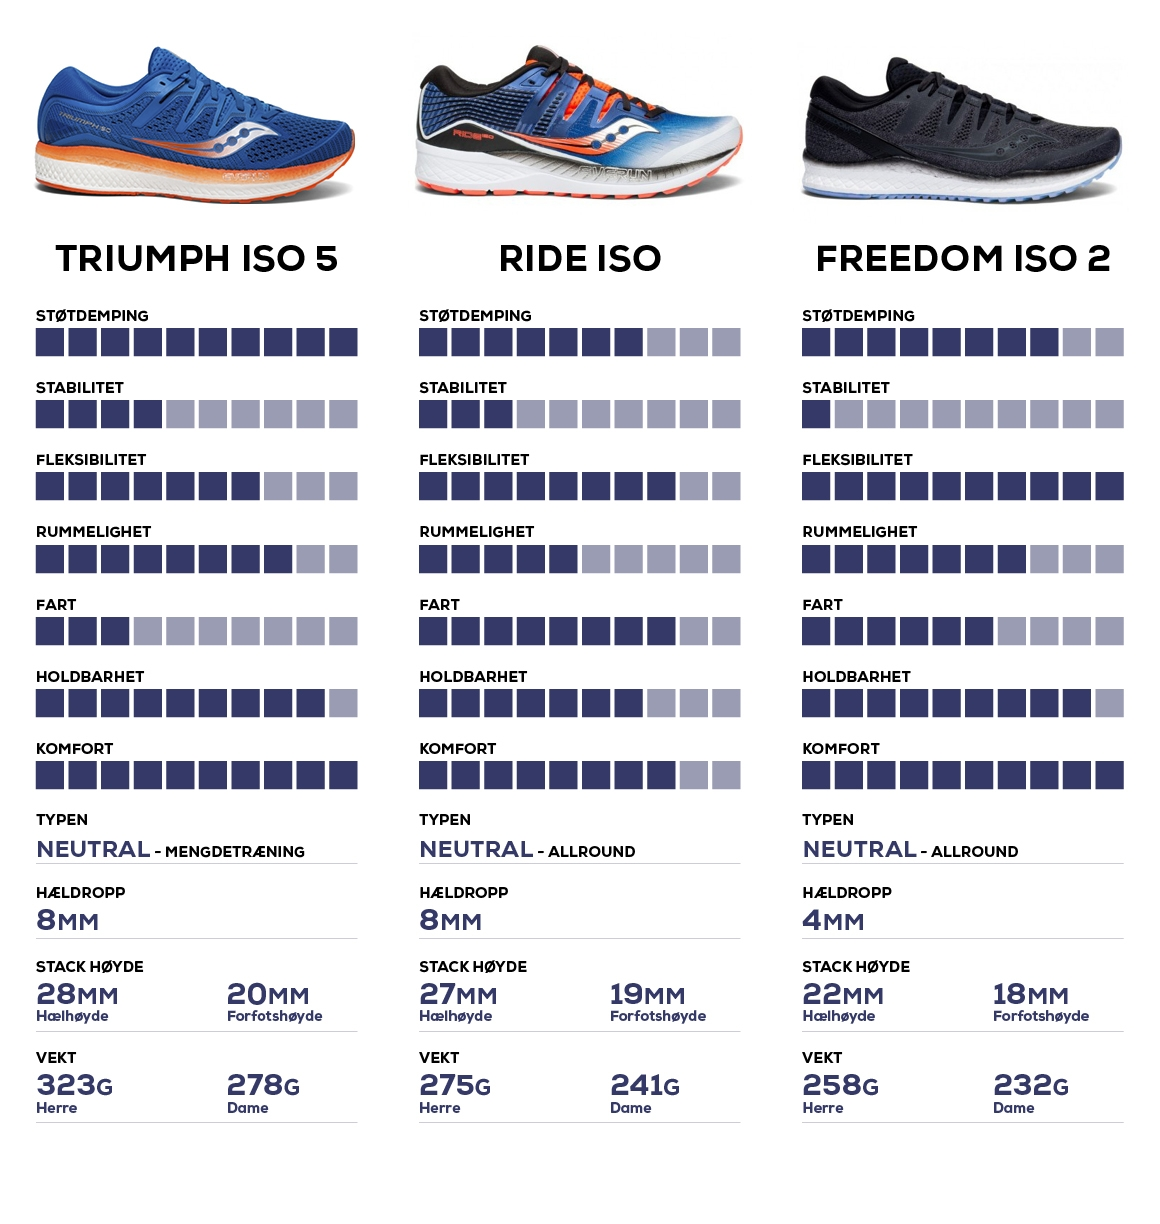 a0d8d181 Saucony Triumph iso 5, saucony ride iso, saucony freedom iso 2 sammenligning